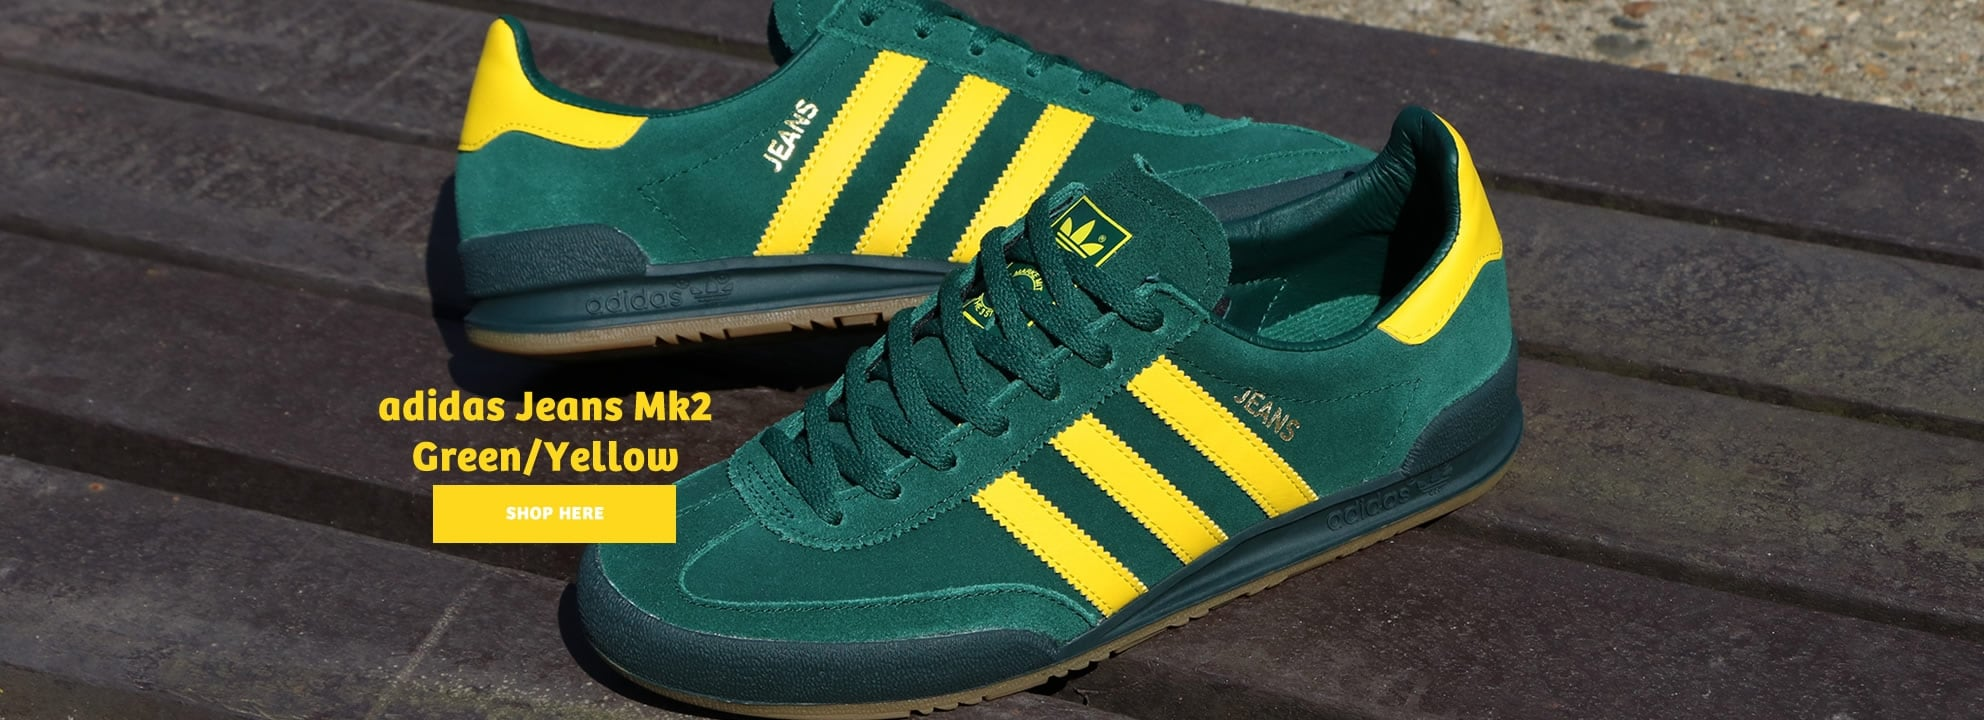 Adidas Jeans Mk2 Green and Yellow